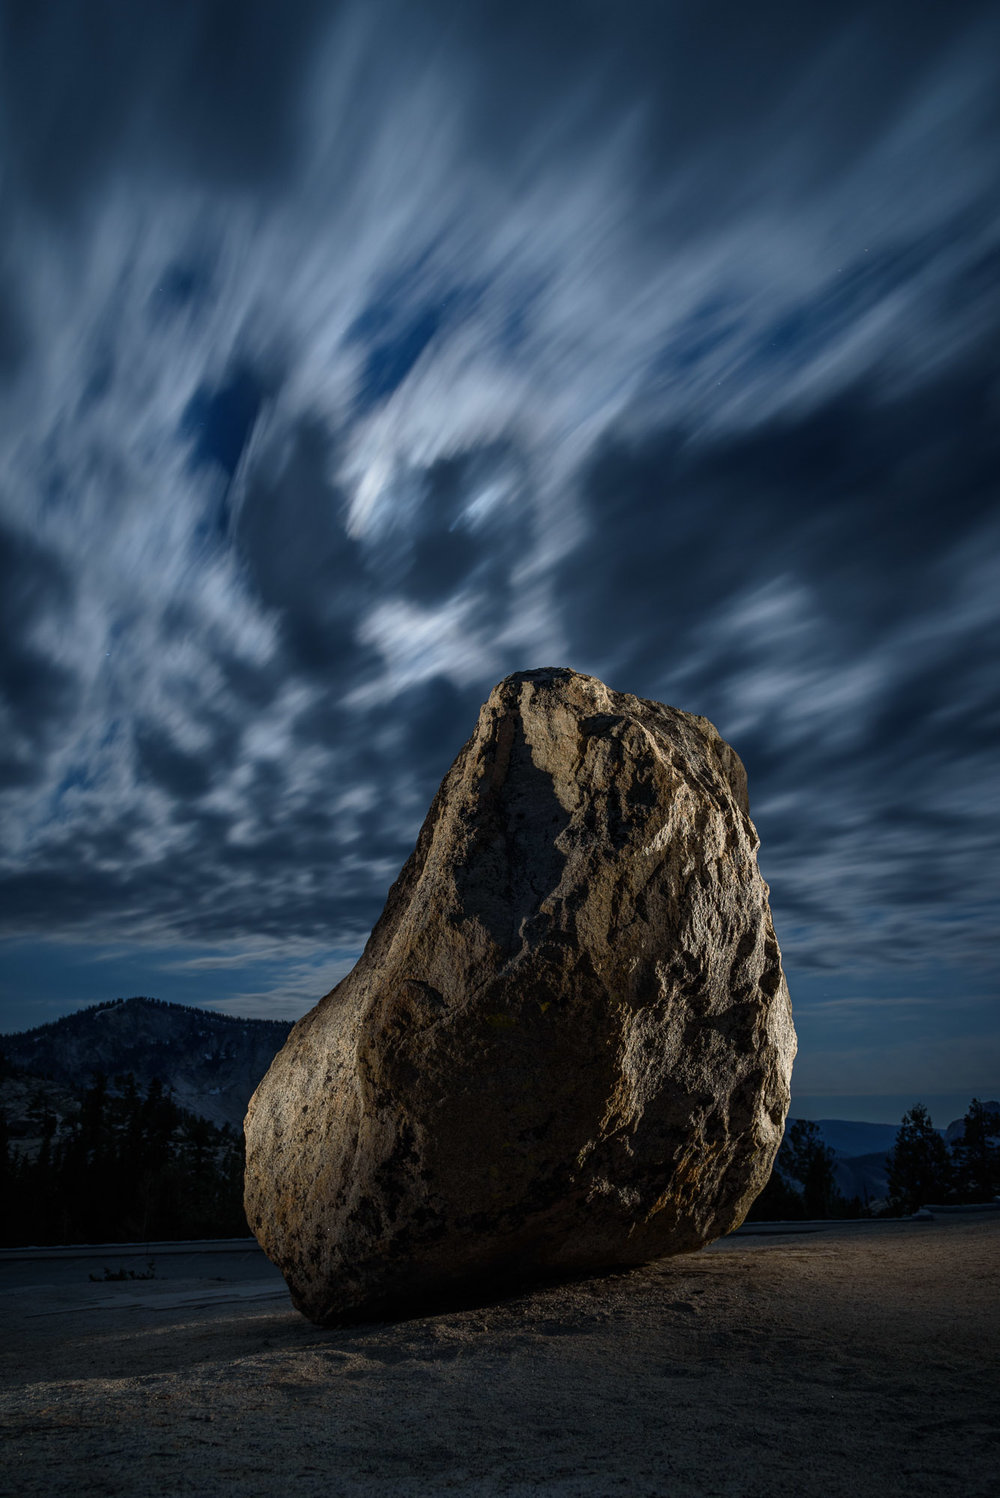 Steve's Rock, Olmsted Point, Yosemite National Park. 30 seconds, f/5.6, ISO 800. Clouds back-lit with moonlight high in the Sierra with light from a  Coast HP5R  filtered with two gels, a  1/2 CTO  and a  1/8 minus green .